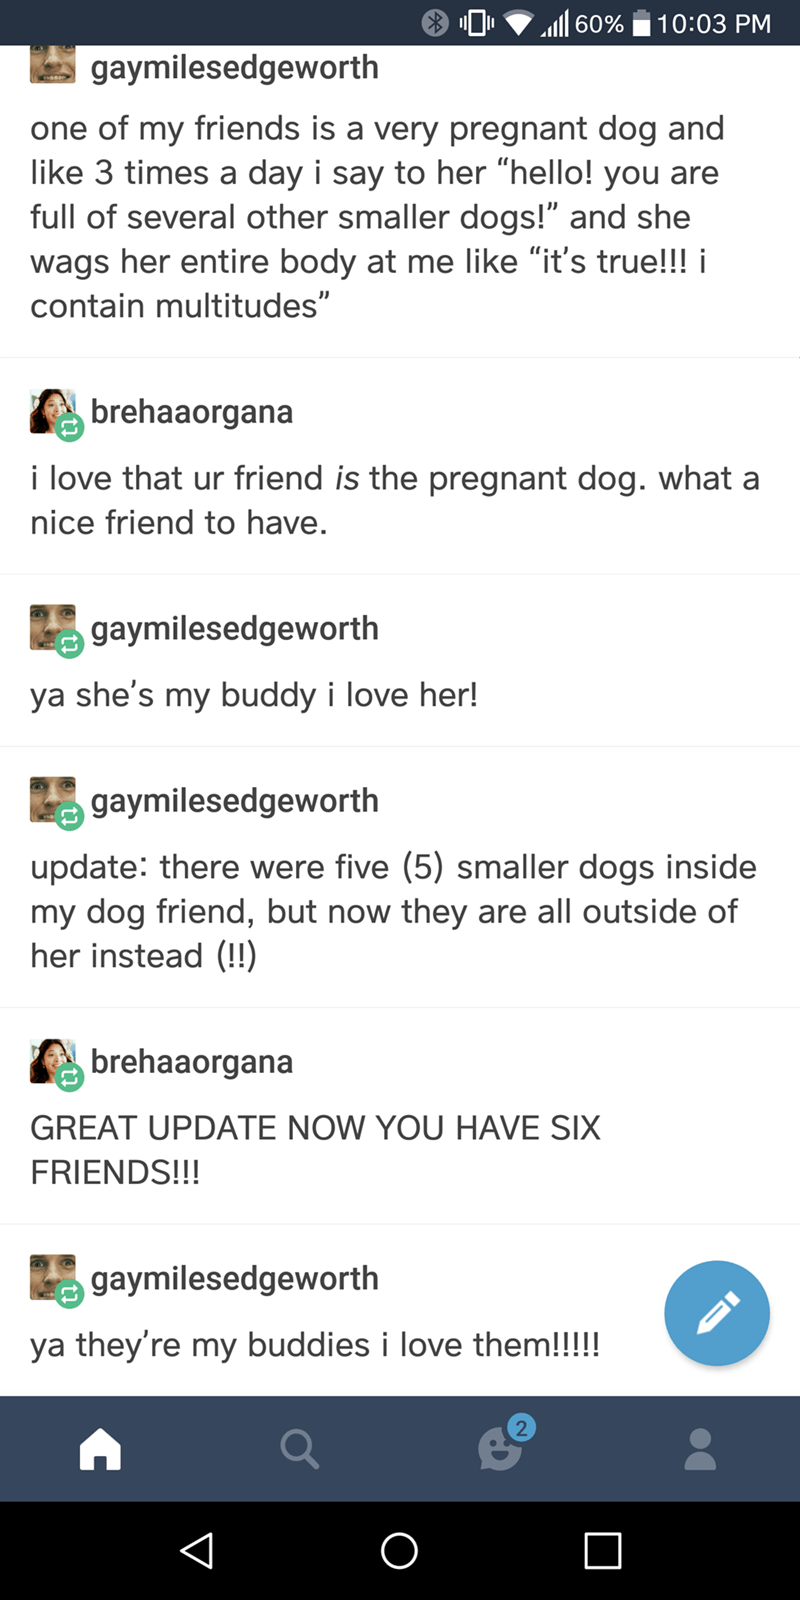 """Font - 60% 10:03 PM gaymilesedgeworth one of my friends is a very pregnant dog and like 3 times a day i say to her """"hello! you are full of several other smaller dogs!"""" and she wags her entire body at me like """"it's true!!! i contain multitudes"""" brehaaorgana i love that ur friend is the pregnant dog. what a nice friend to have. gaymilesedgeworth ya she's my buddy i love her! gaymilesedgeworth update: there were five (5) smaller dogs inside my dog friend, but now they are all outside of her instead"""